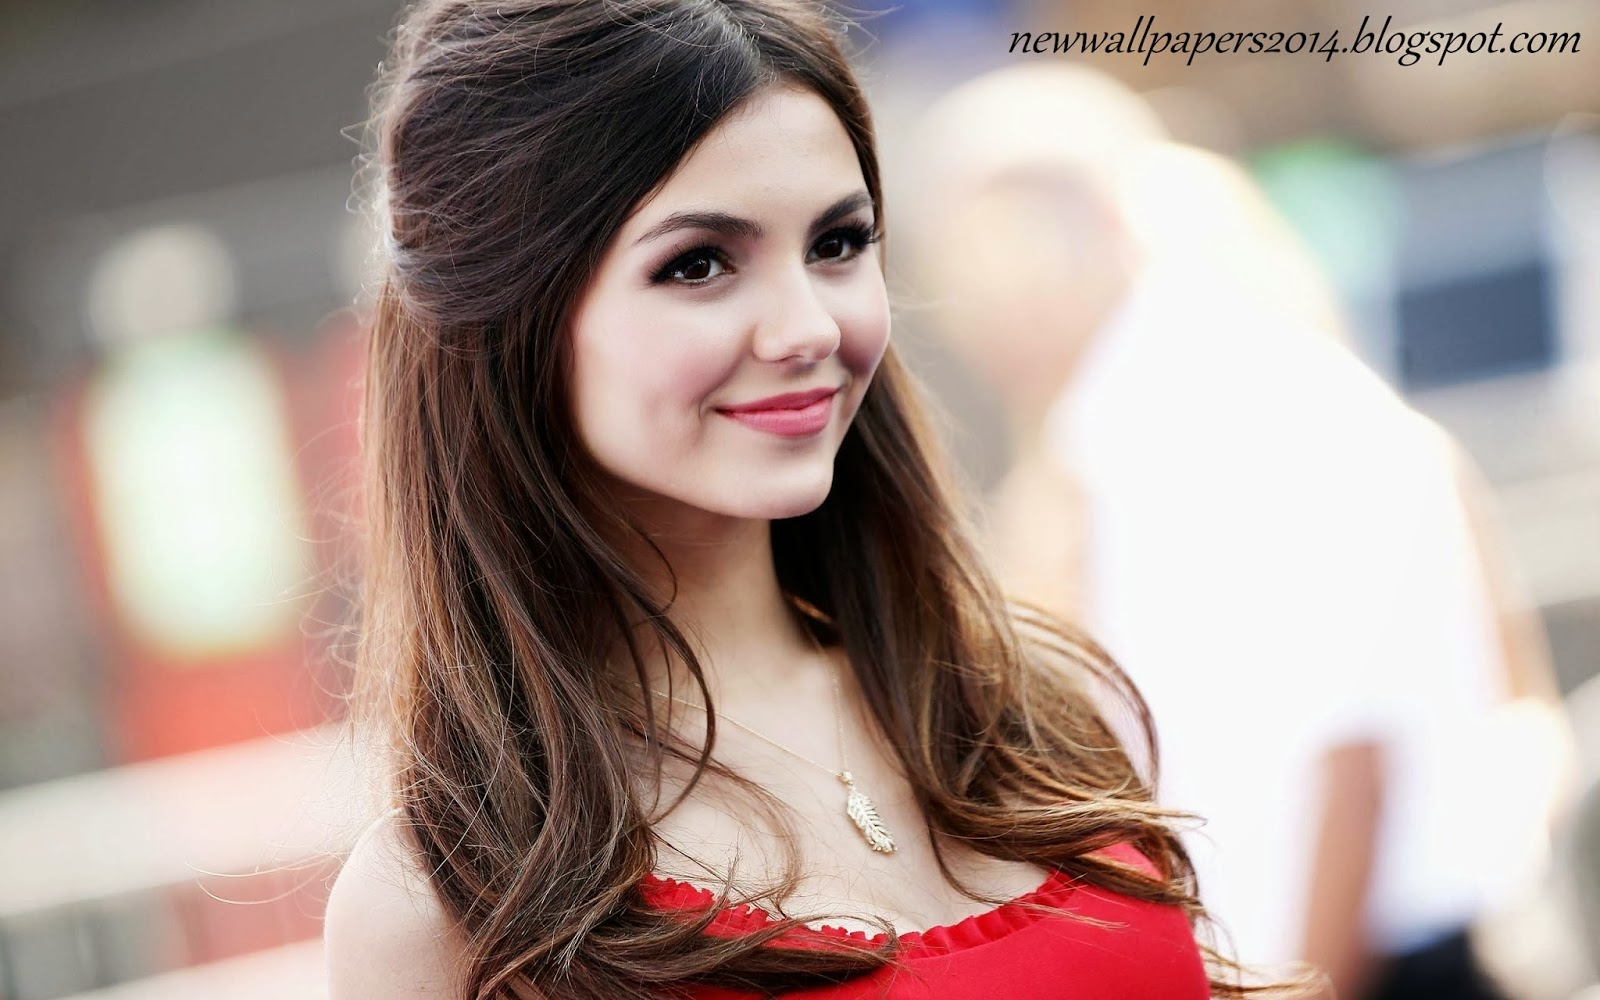 Victoria Justice Wallpapers   Victoria Justice Wallpapers 2014   Hd 1600x1000